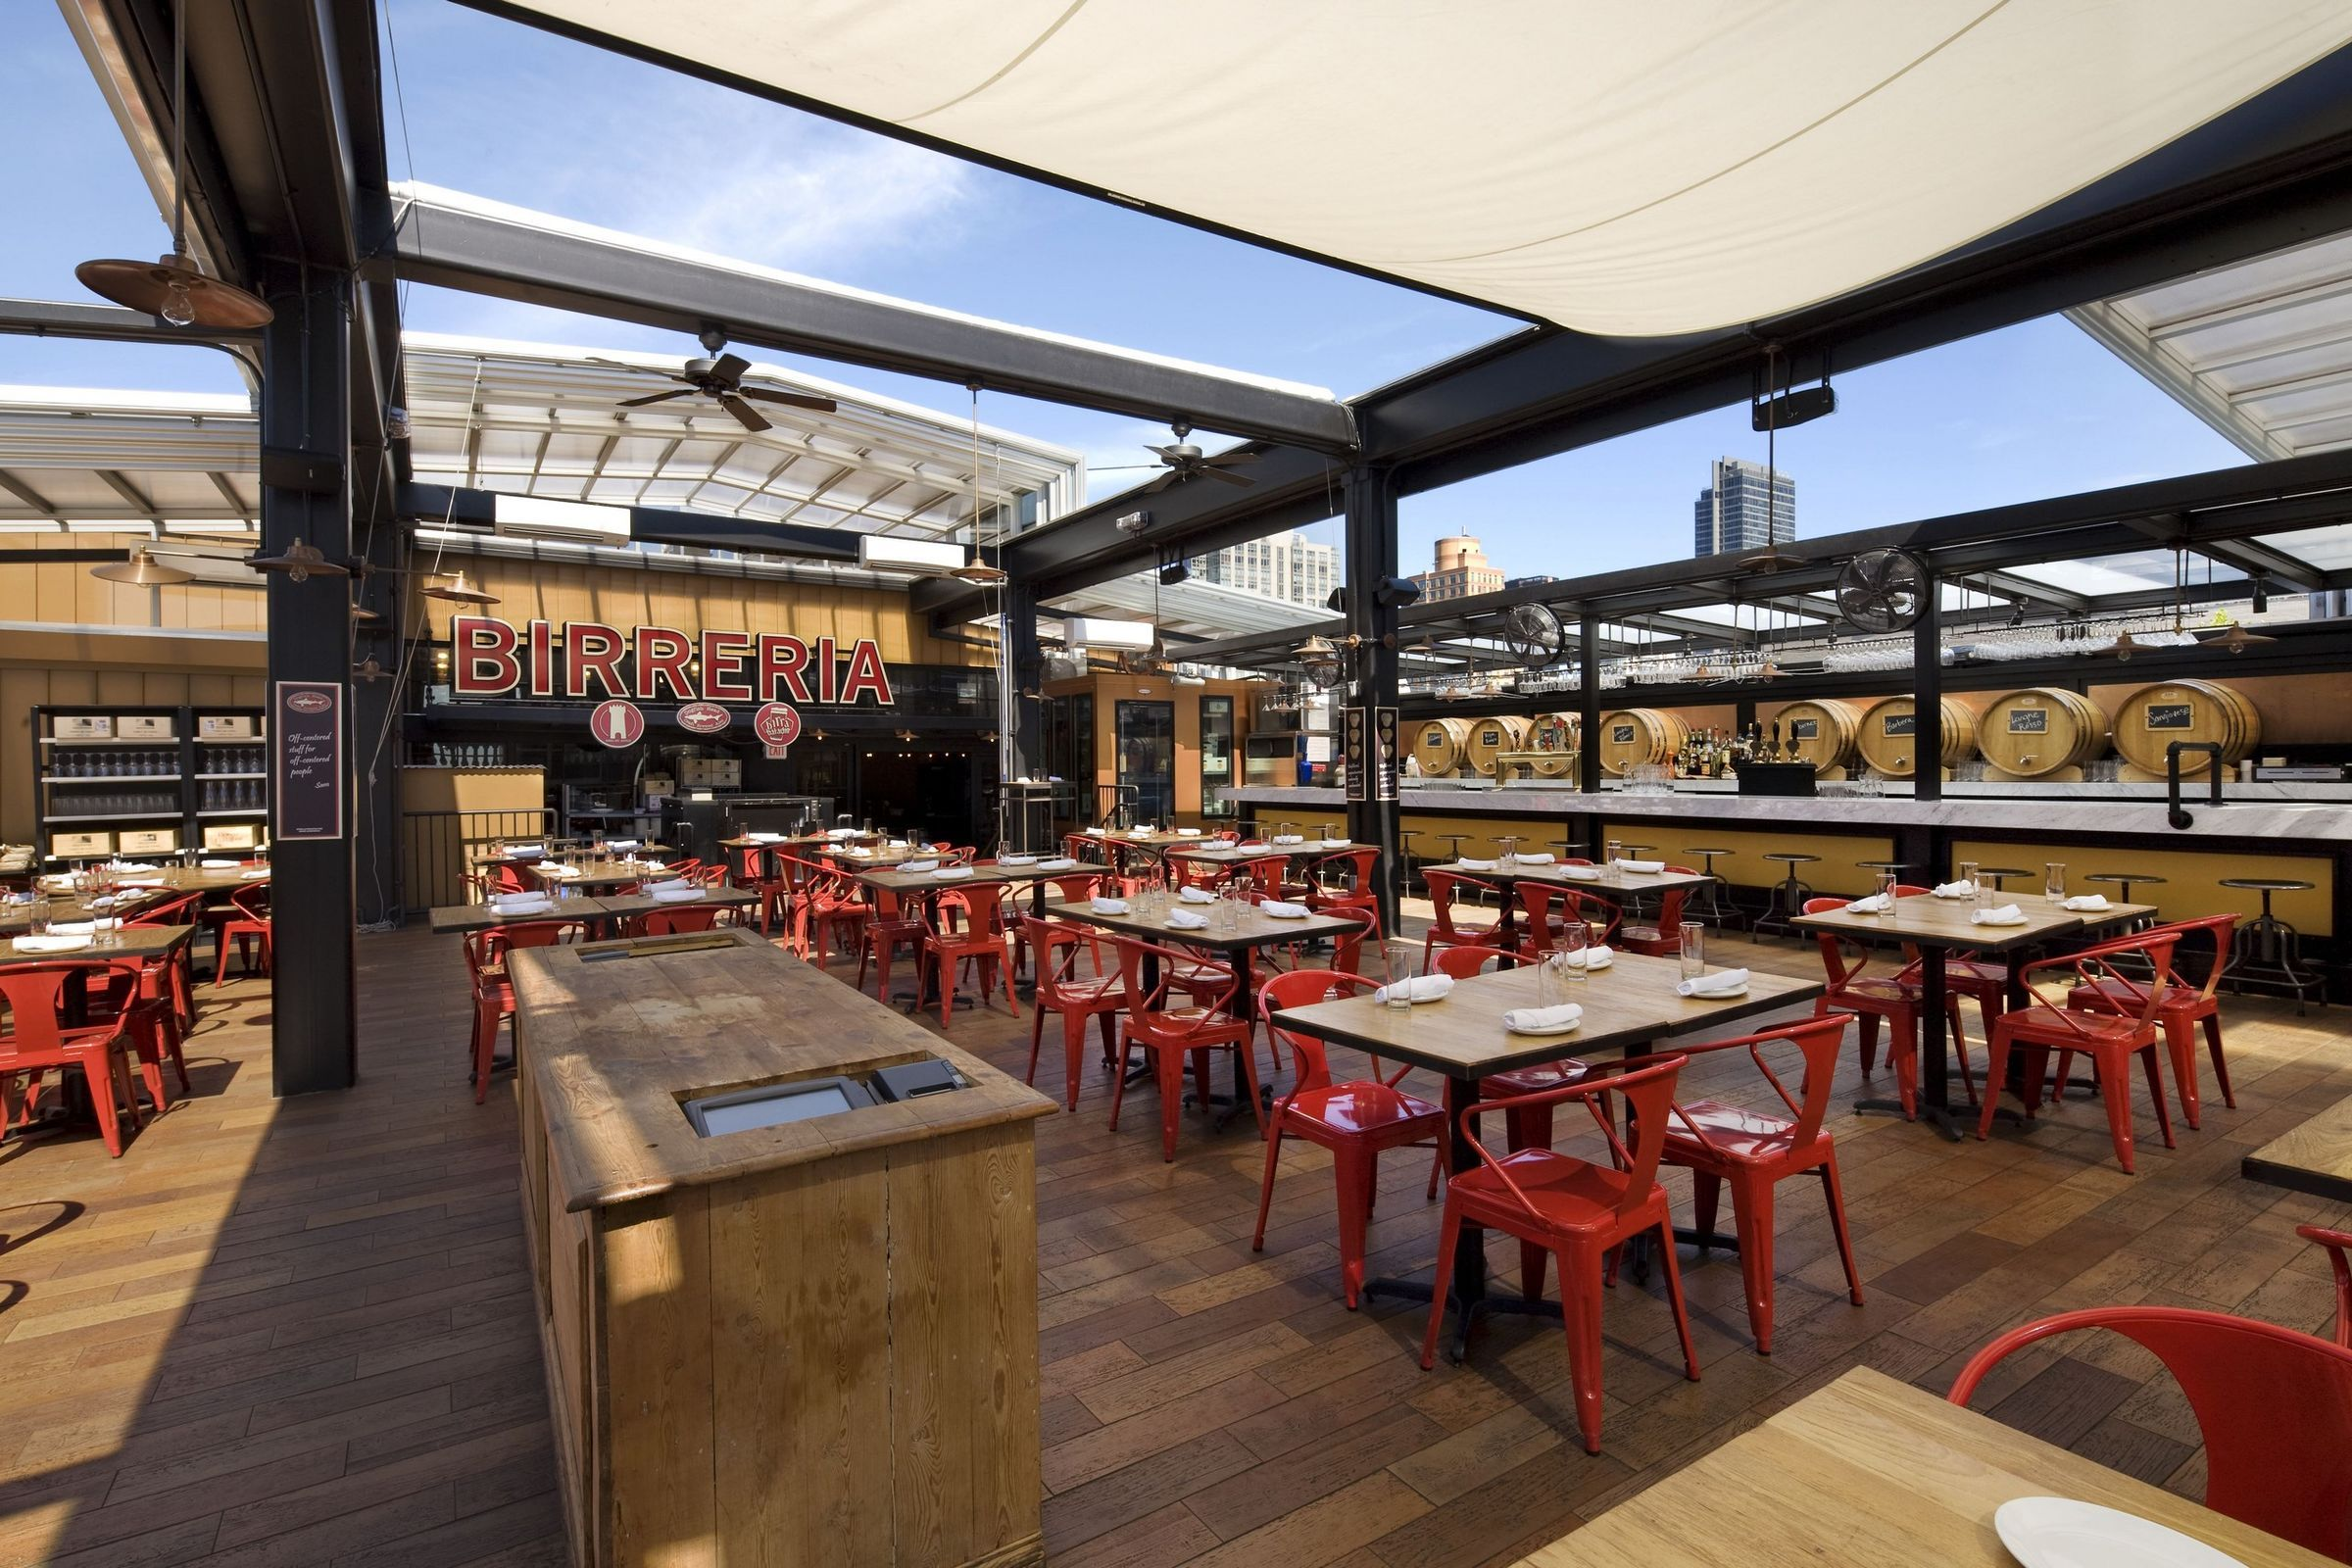 Eataly Birreria Retractable Roof New York City America S Leading Custom Manufacturer Of Retractable Enclosure And Roof Systems In 2020 Rooftop Bars Nyc Luxury Rentals Rooftop Bar